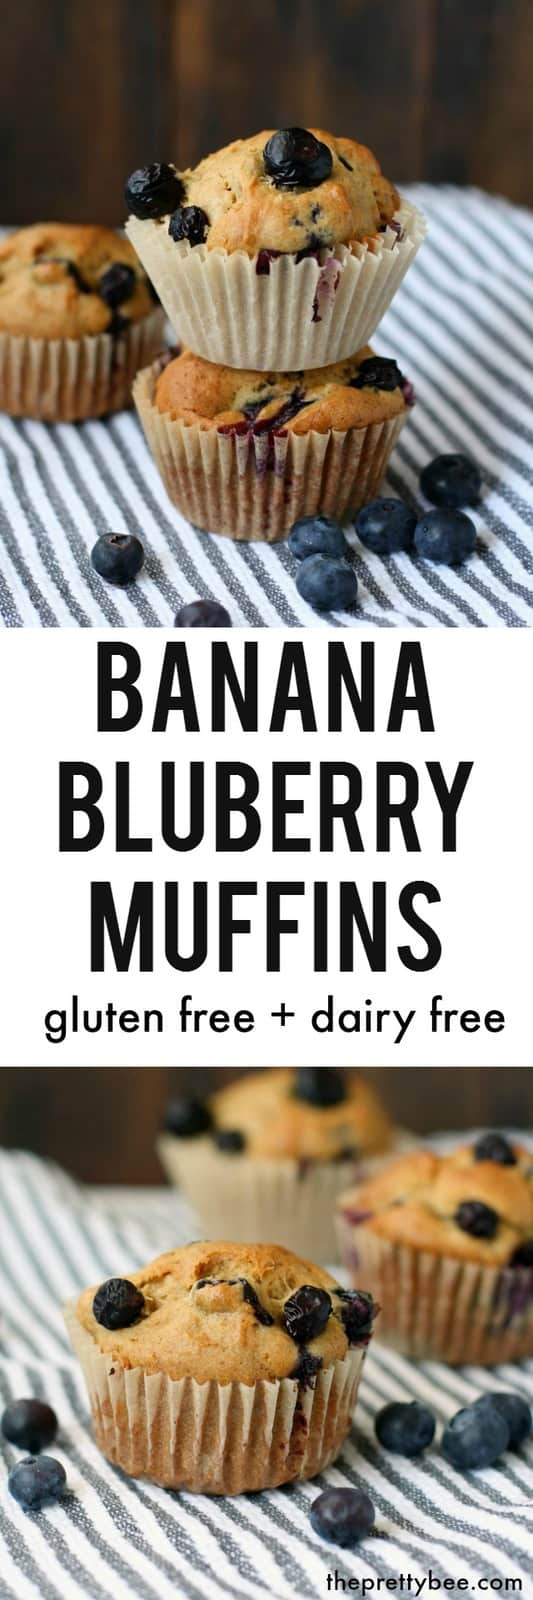 Delicious gluten free and dairy free banana blueberry muffins - a great breakfast or snack!